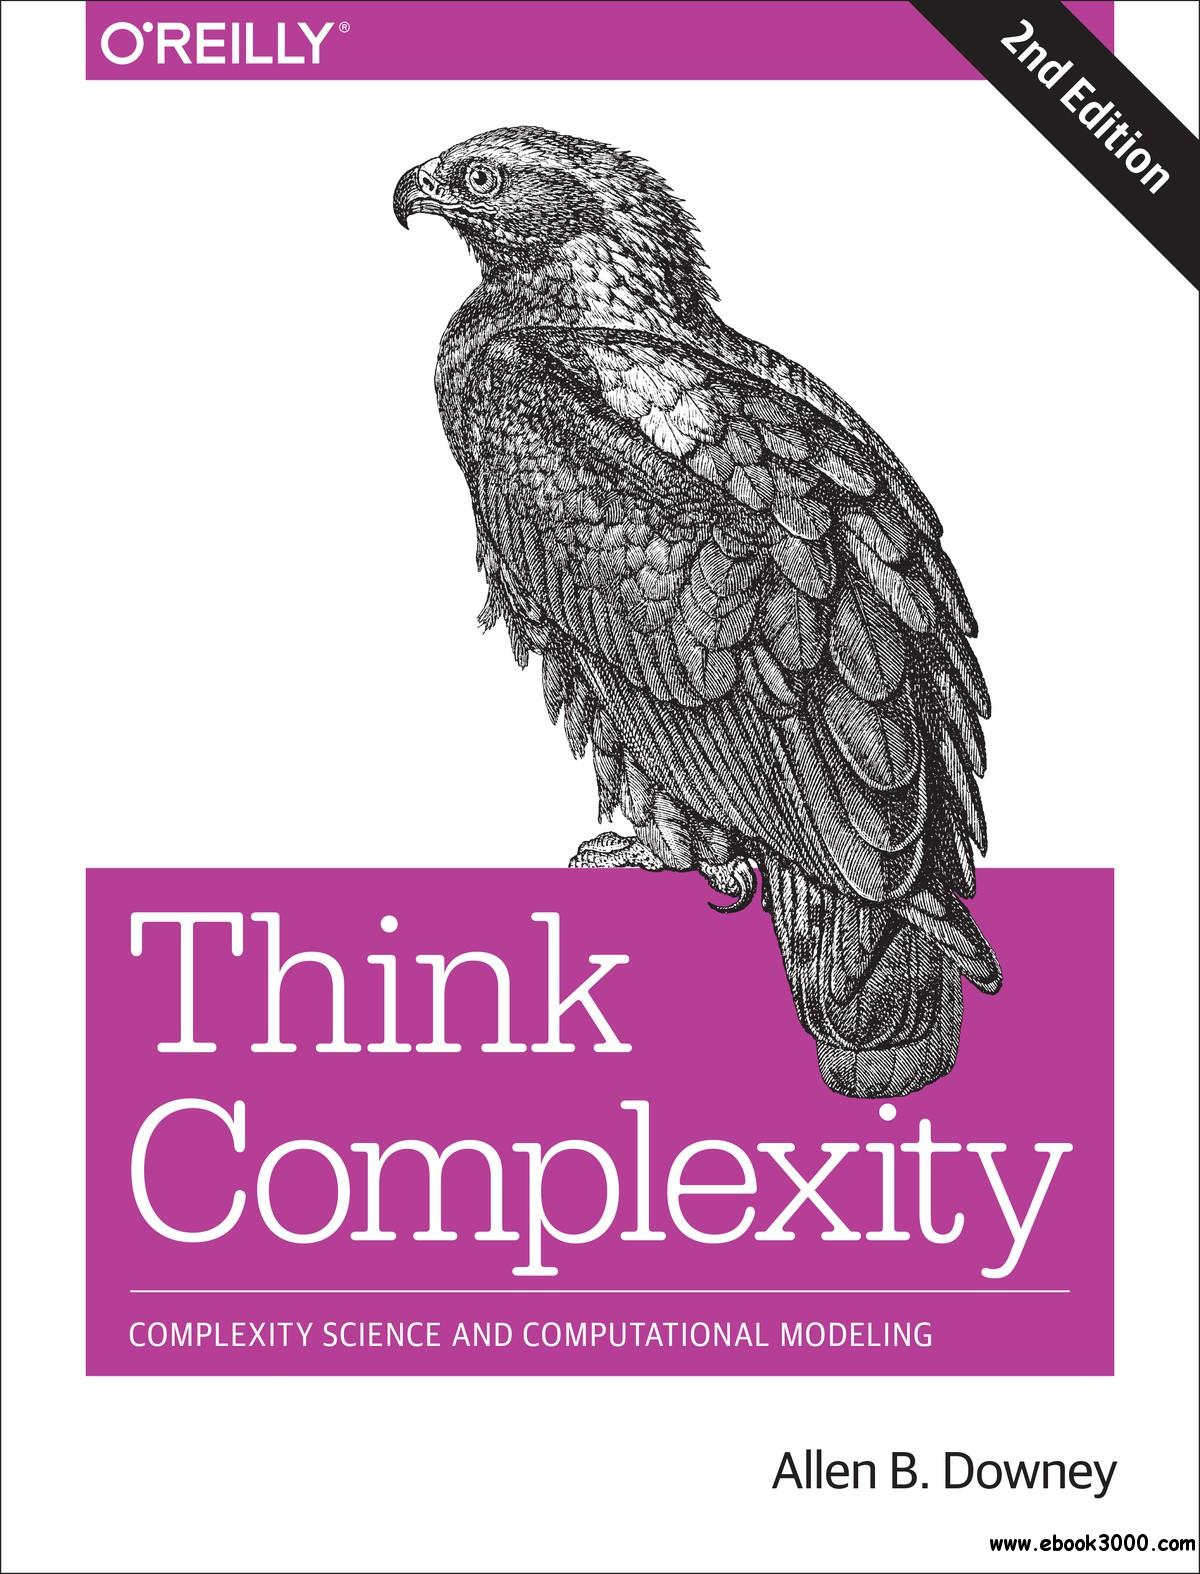 Think Complexity: Complexity Science and Computational Modeling, 2nd Edition